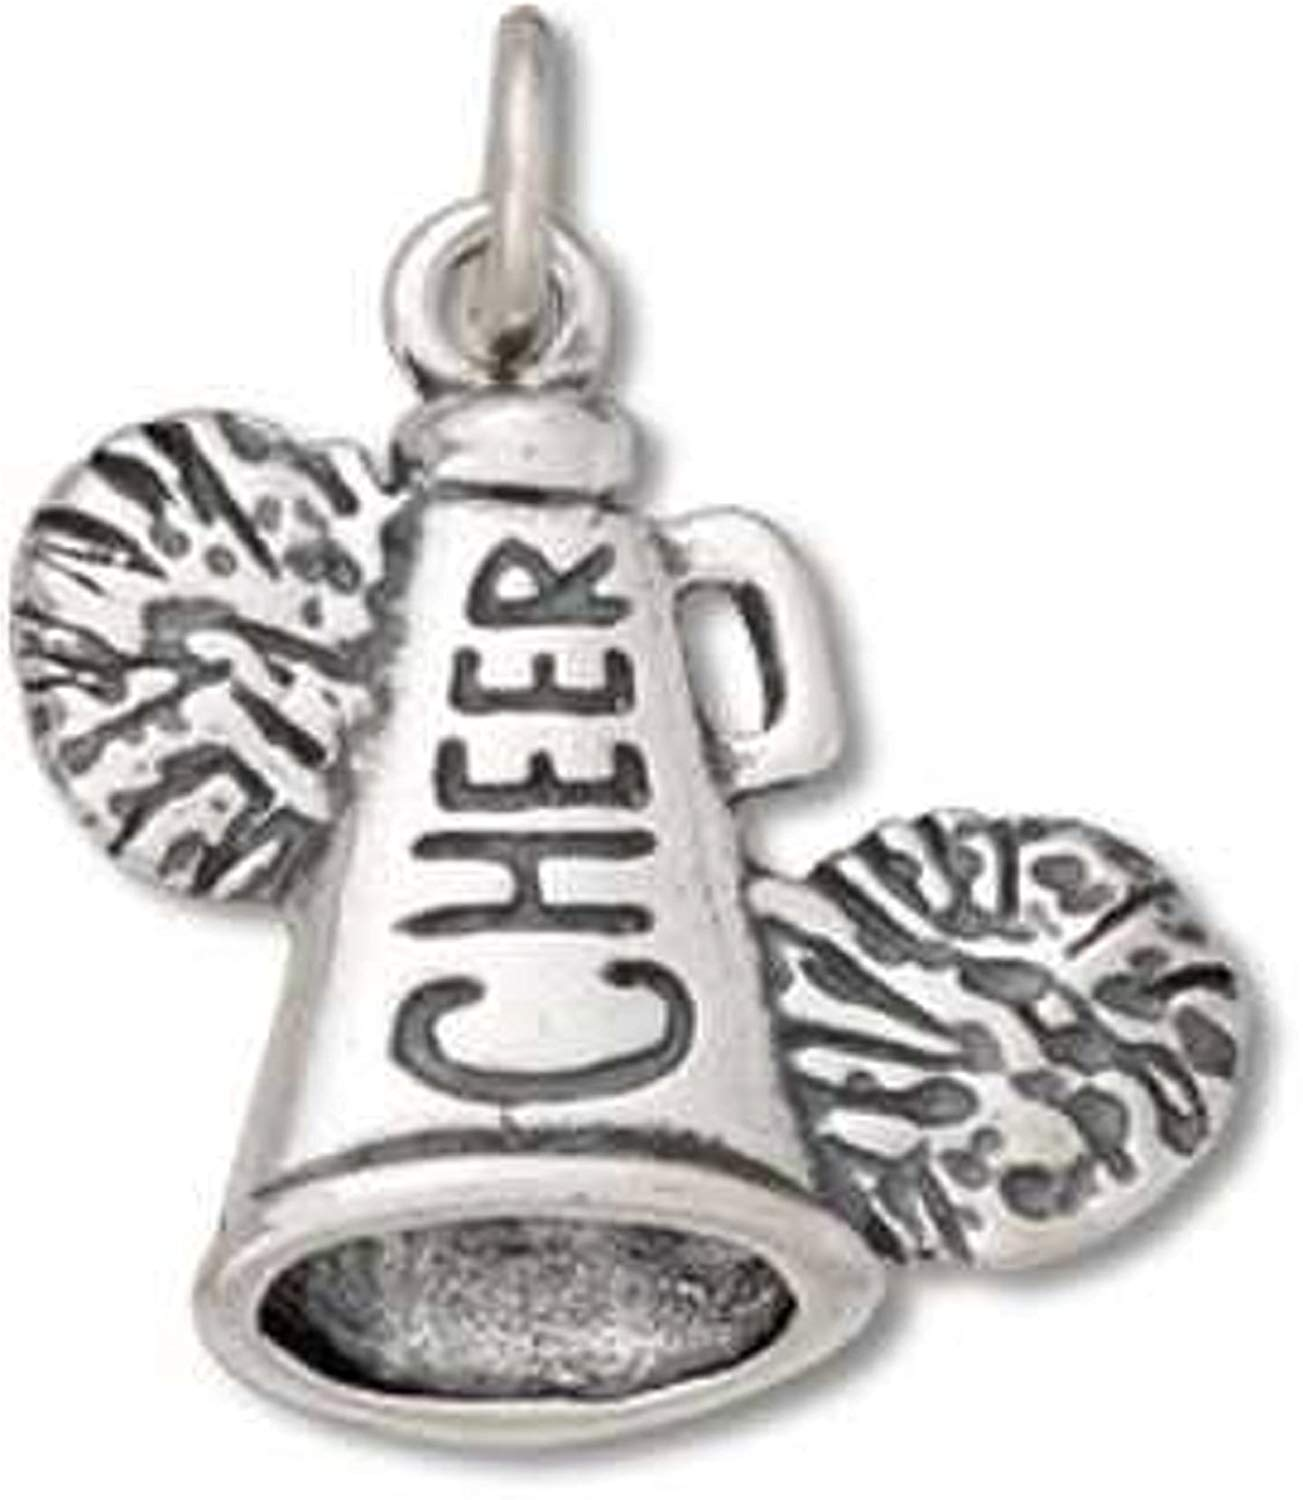 Sterling Silver Charm Bracelet Attached 2D Football Cheerleaders Megaphone And Pom Poms Charm